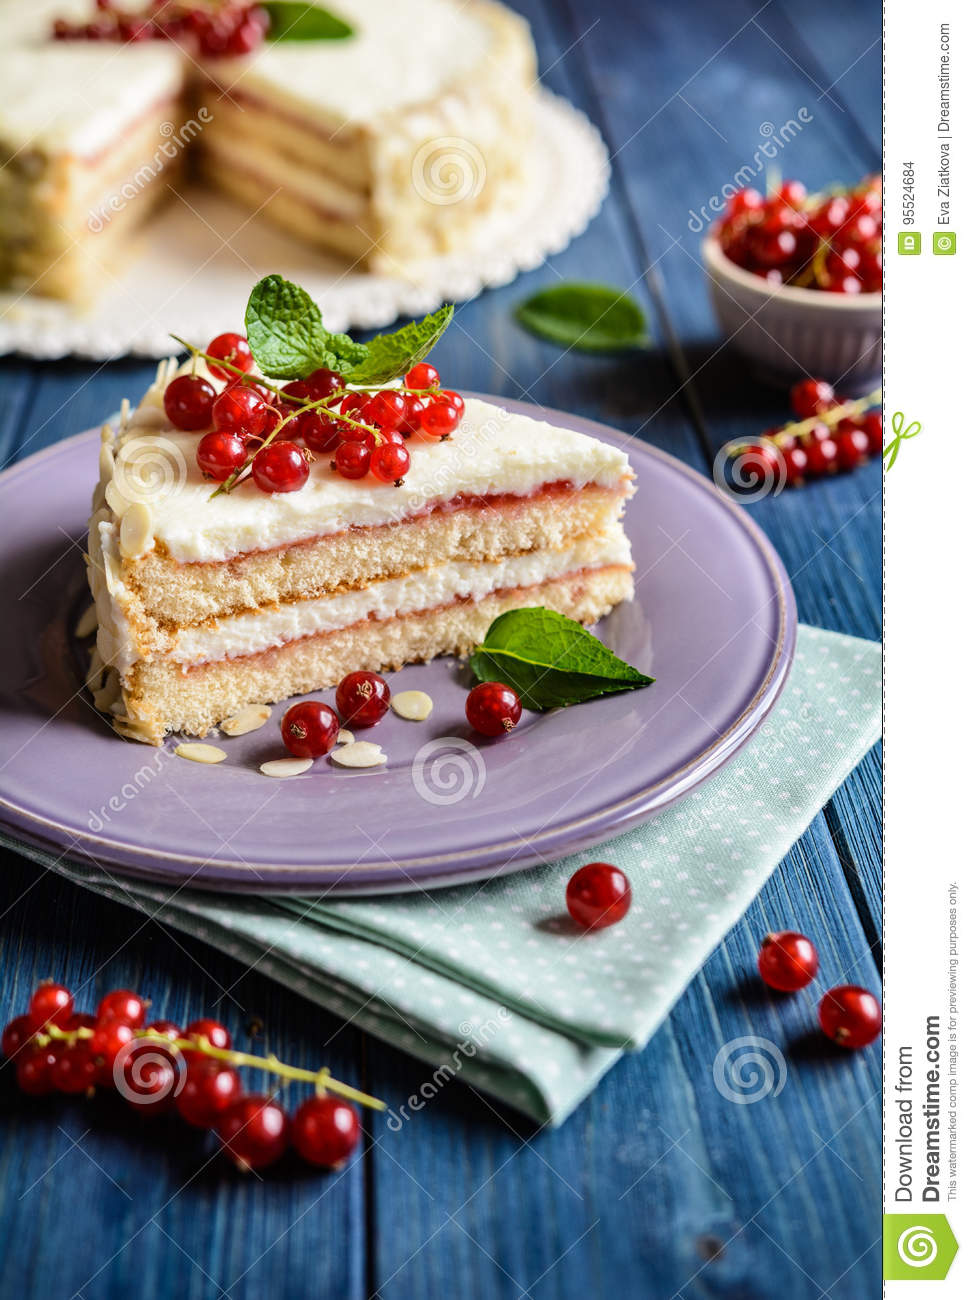 Delicious cake with mascarpone, whipped cream, red currant and almond slices